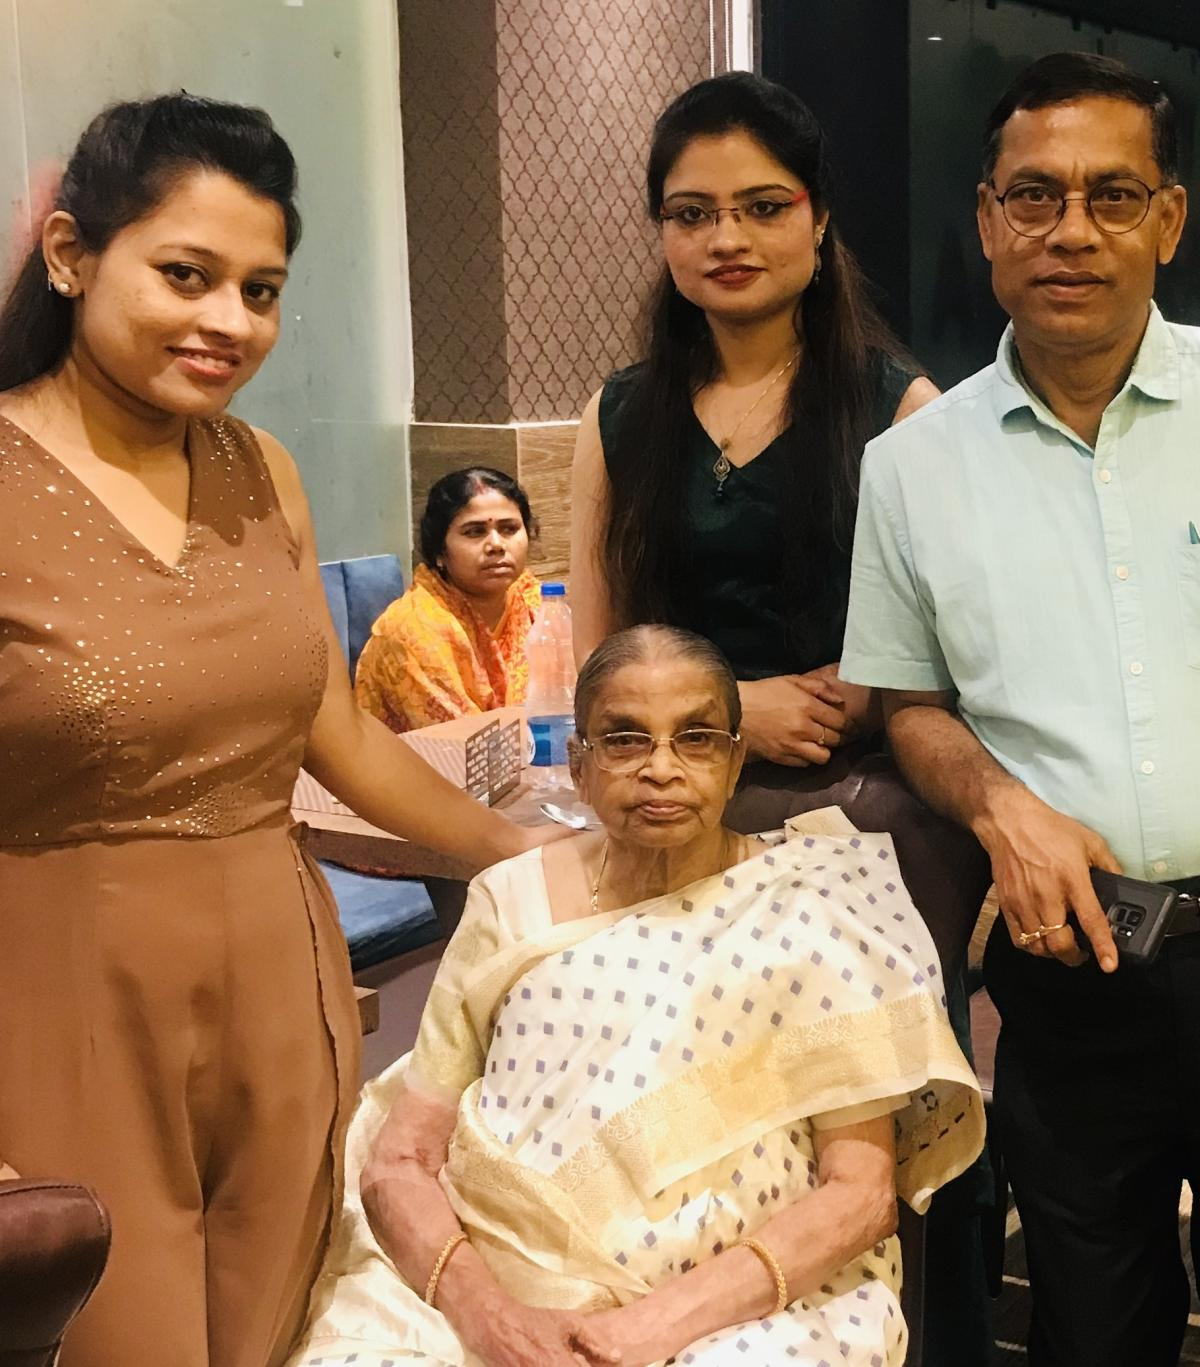 Manas Ray's brother, Kajal, and their mother, Bandana, seated in front. Kajal and his twin daughters, Puja and Lija, (standing) and a nurse (seated in background) have helped care for Bandana in Bardhaman, India.